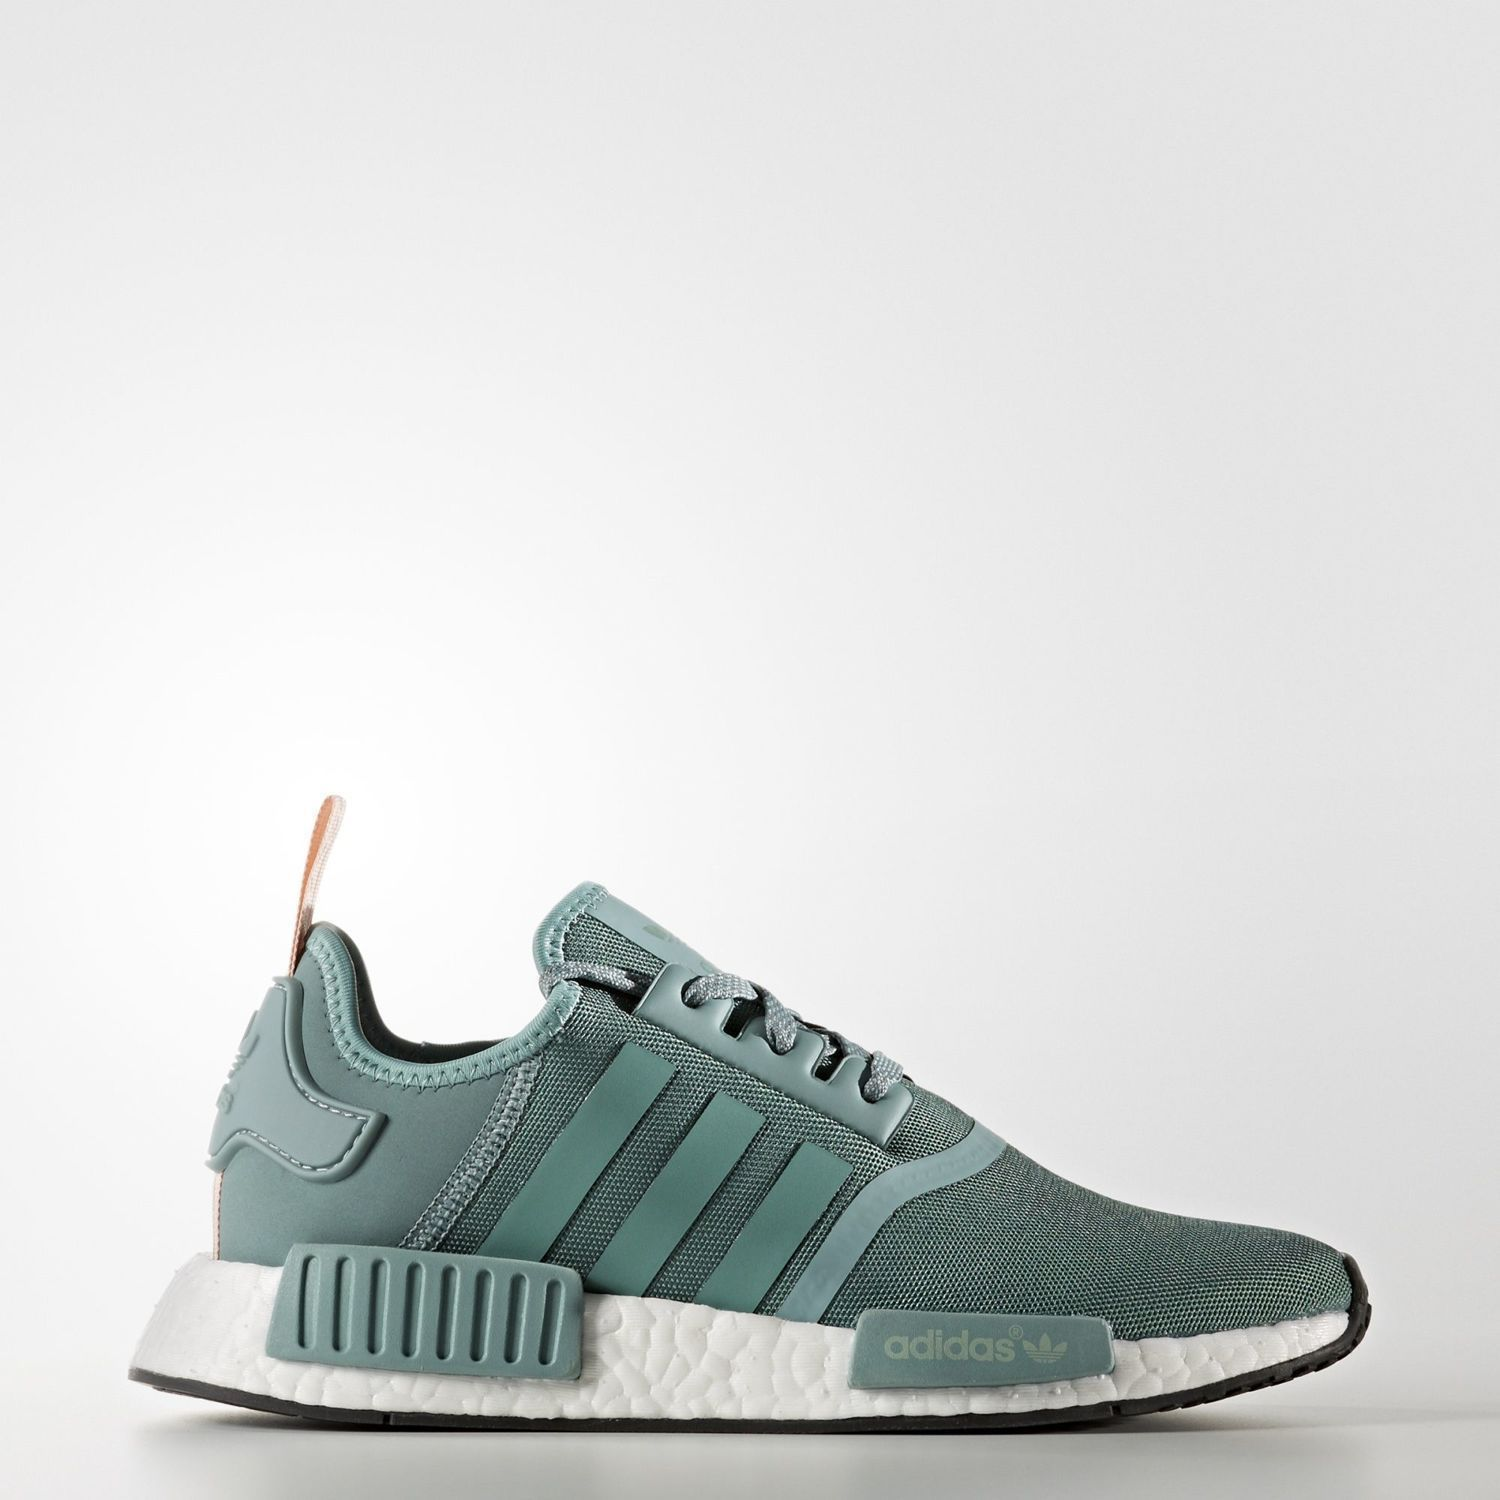 Women'S Adidas Nmd R1 Vapour Steel / Teal / Pink S76010 Green Turquoise ...